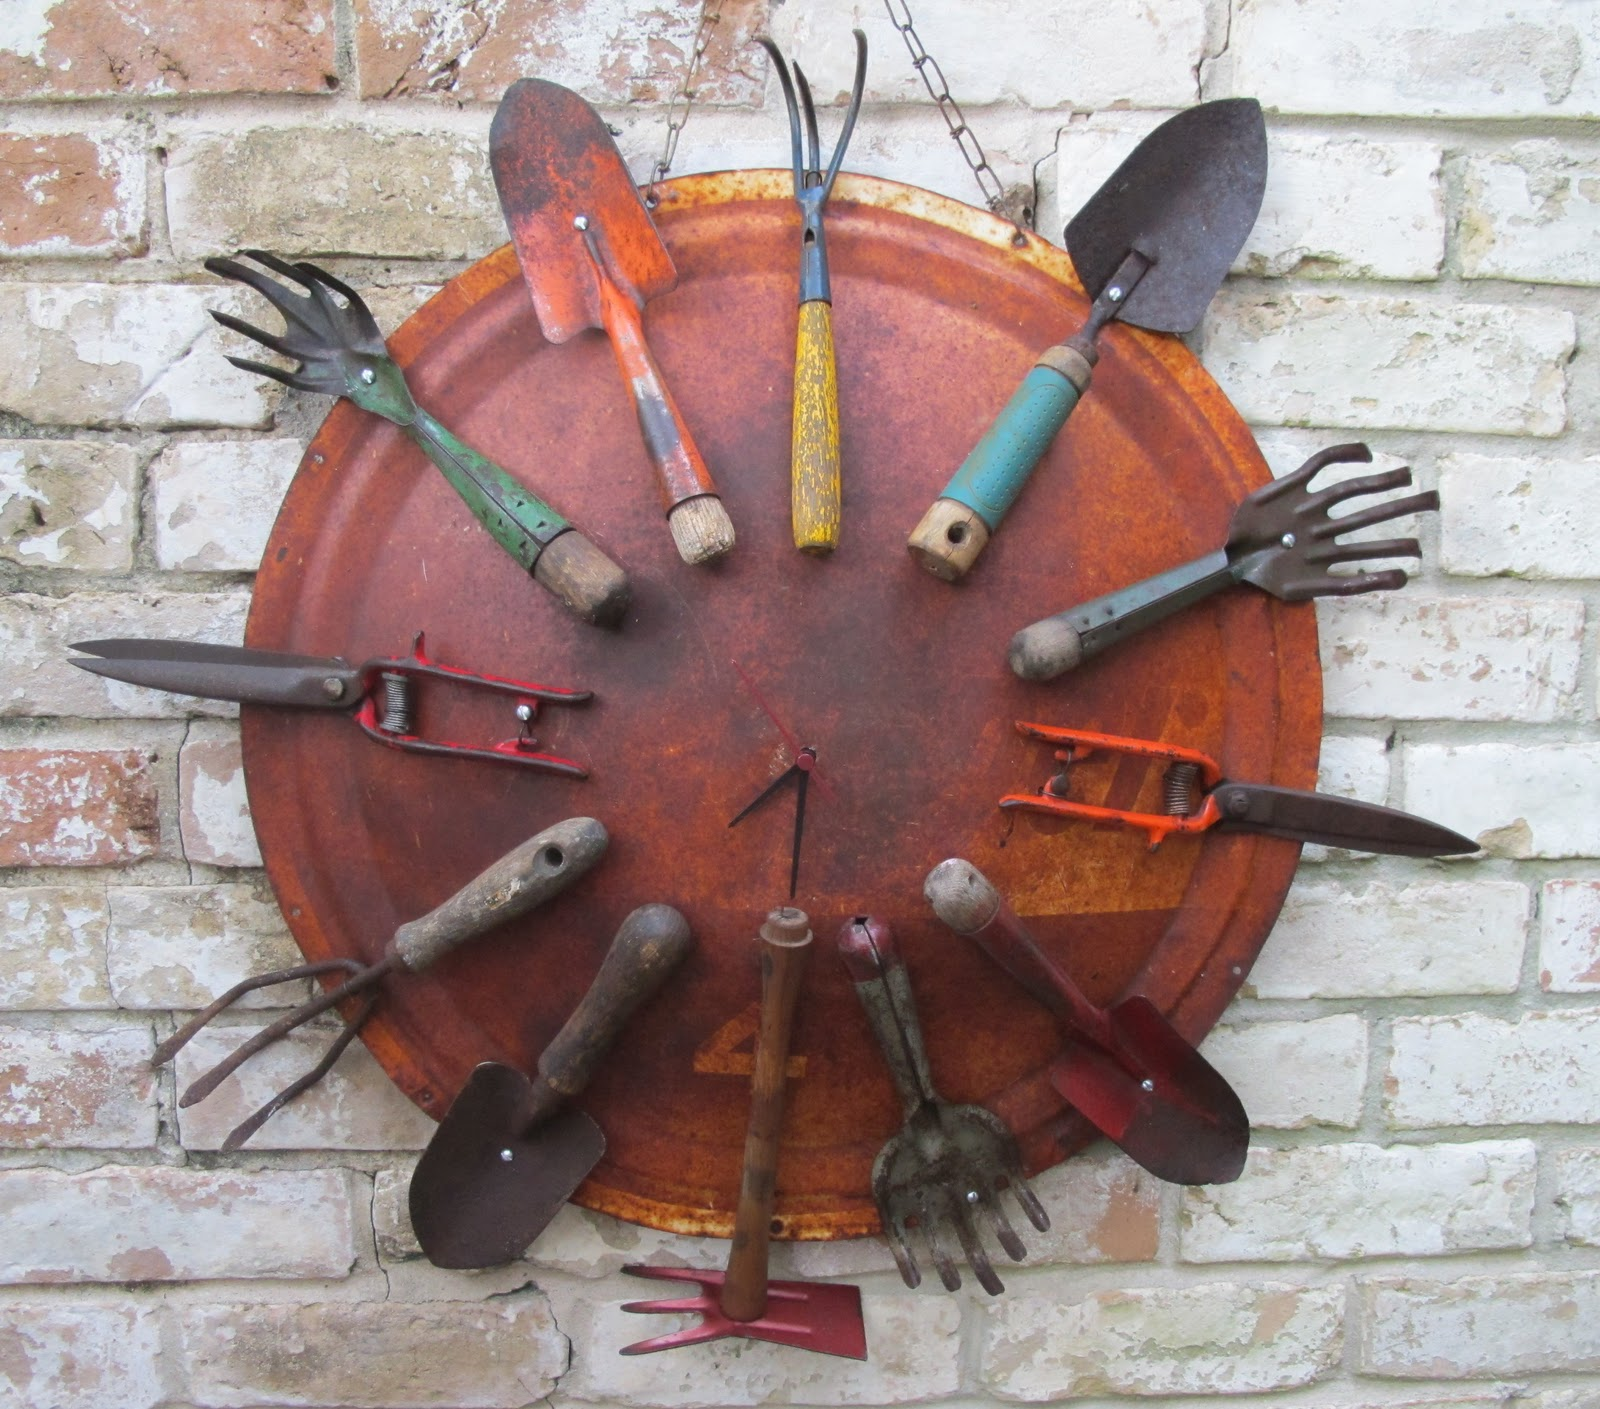 Old Garden Tools as a Wall Decoration